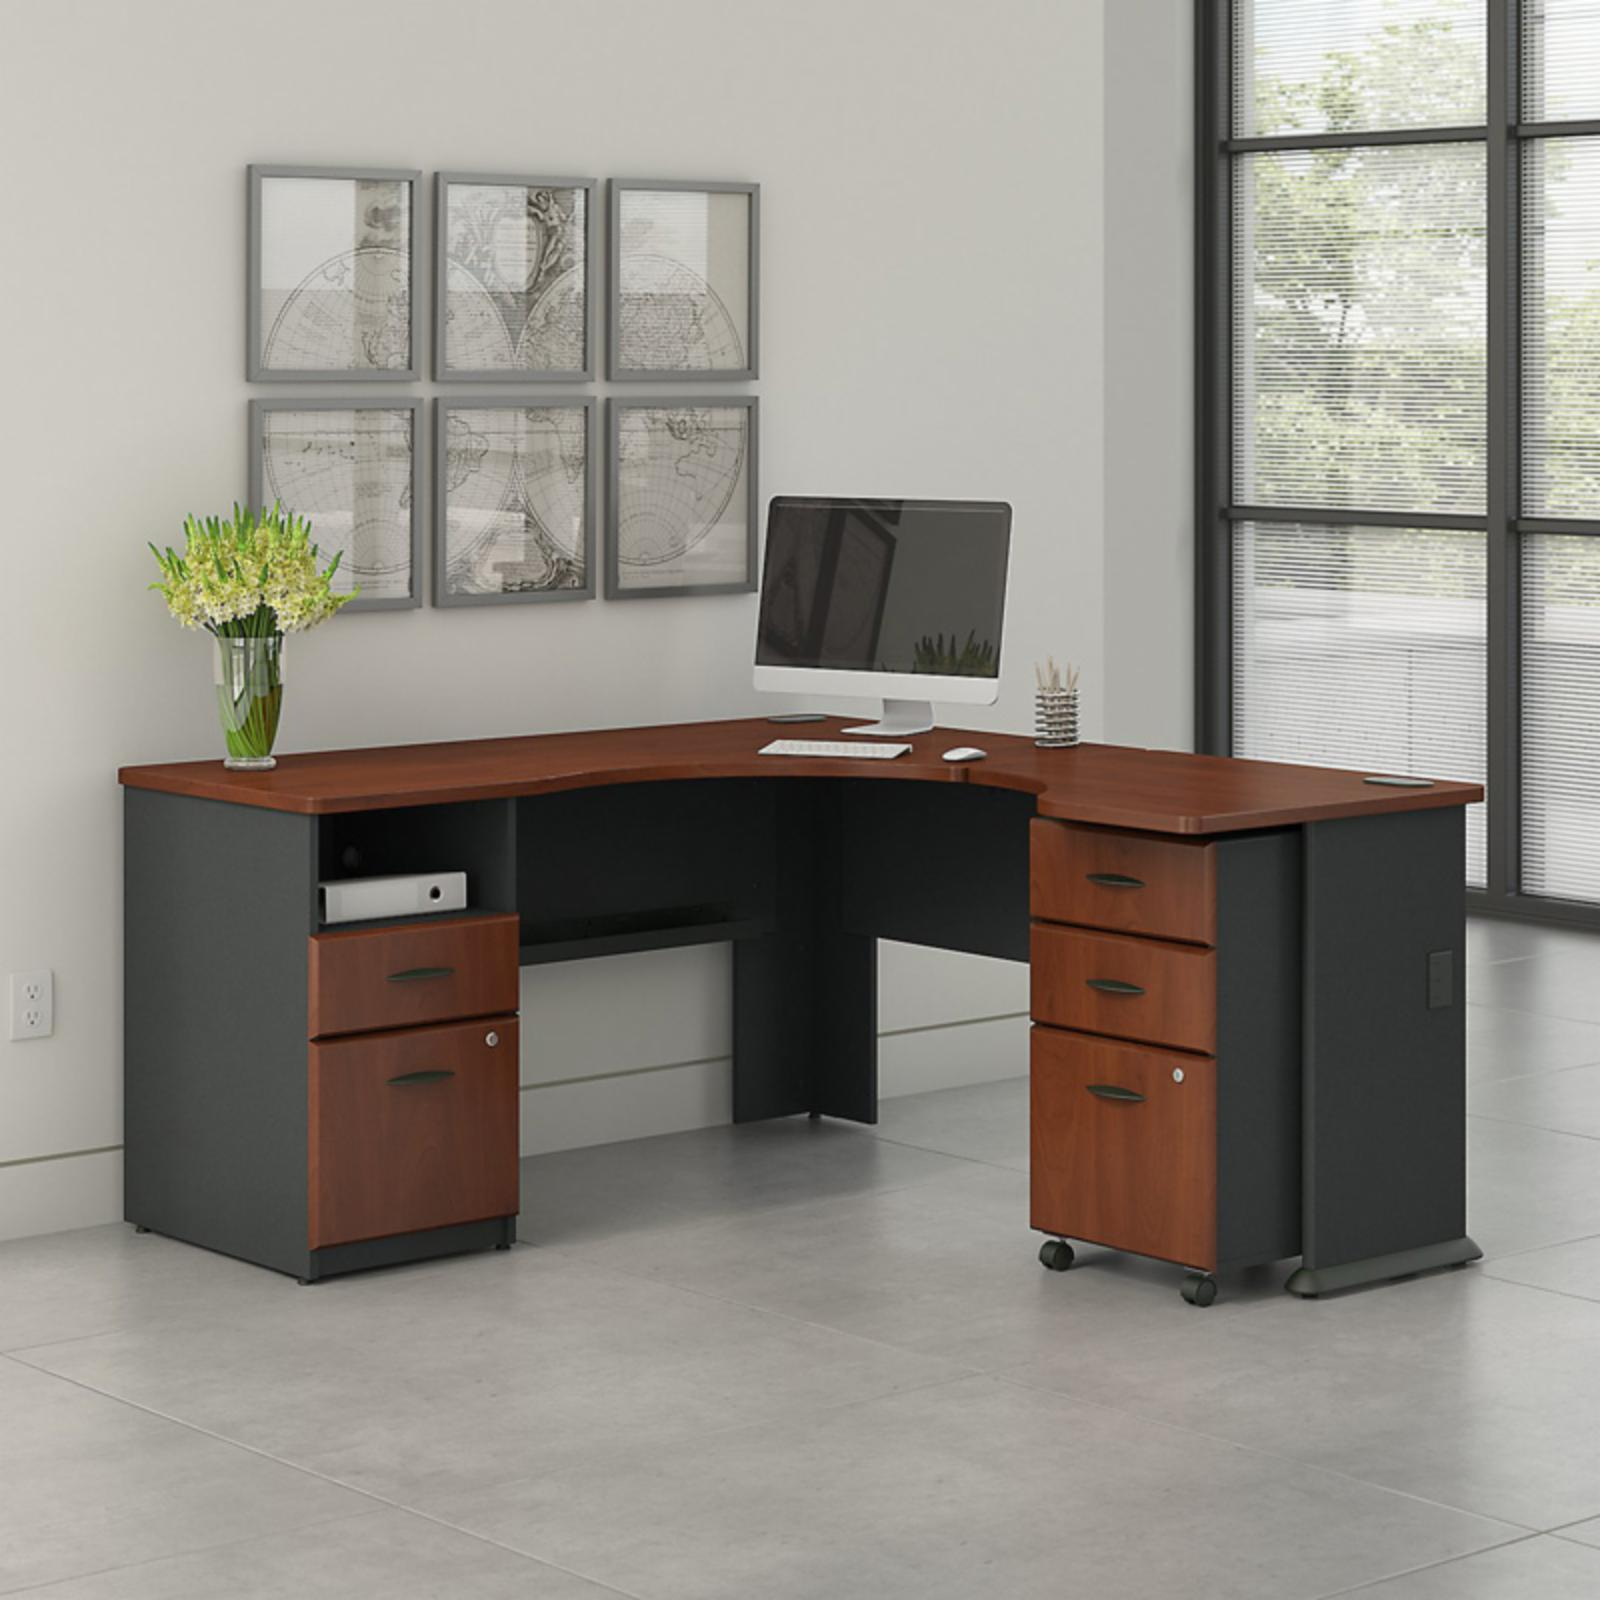 Office Connect Access L Shaped Corner Desk with Pedestal and Mobile Pedestal - ACS002HC